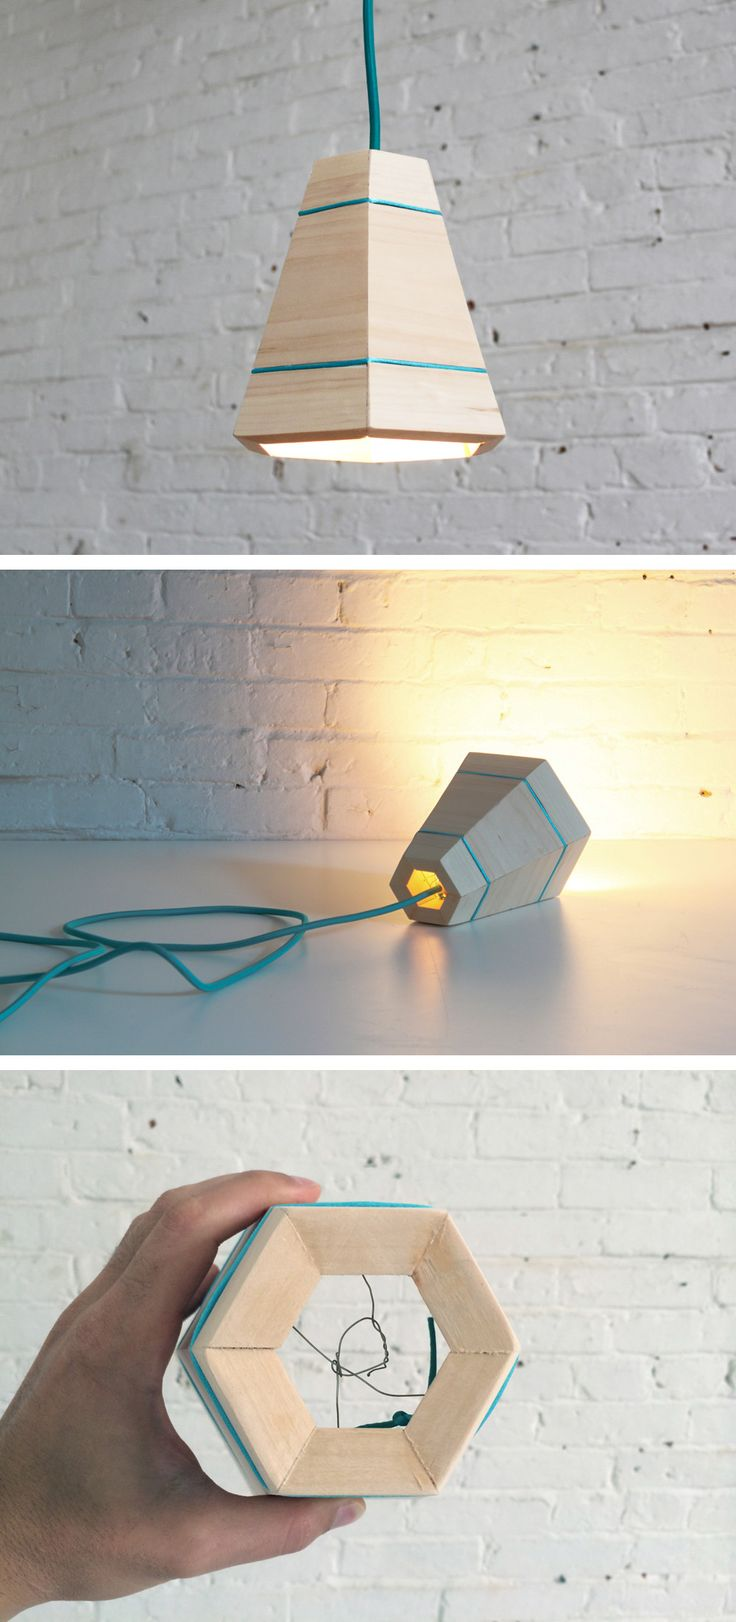 You can use scrap pieces of pine wood to make this pendant lamp. Check out the website for instructions: http://www.homemade-modern.com/ep42-wood-pendant-lamp/